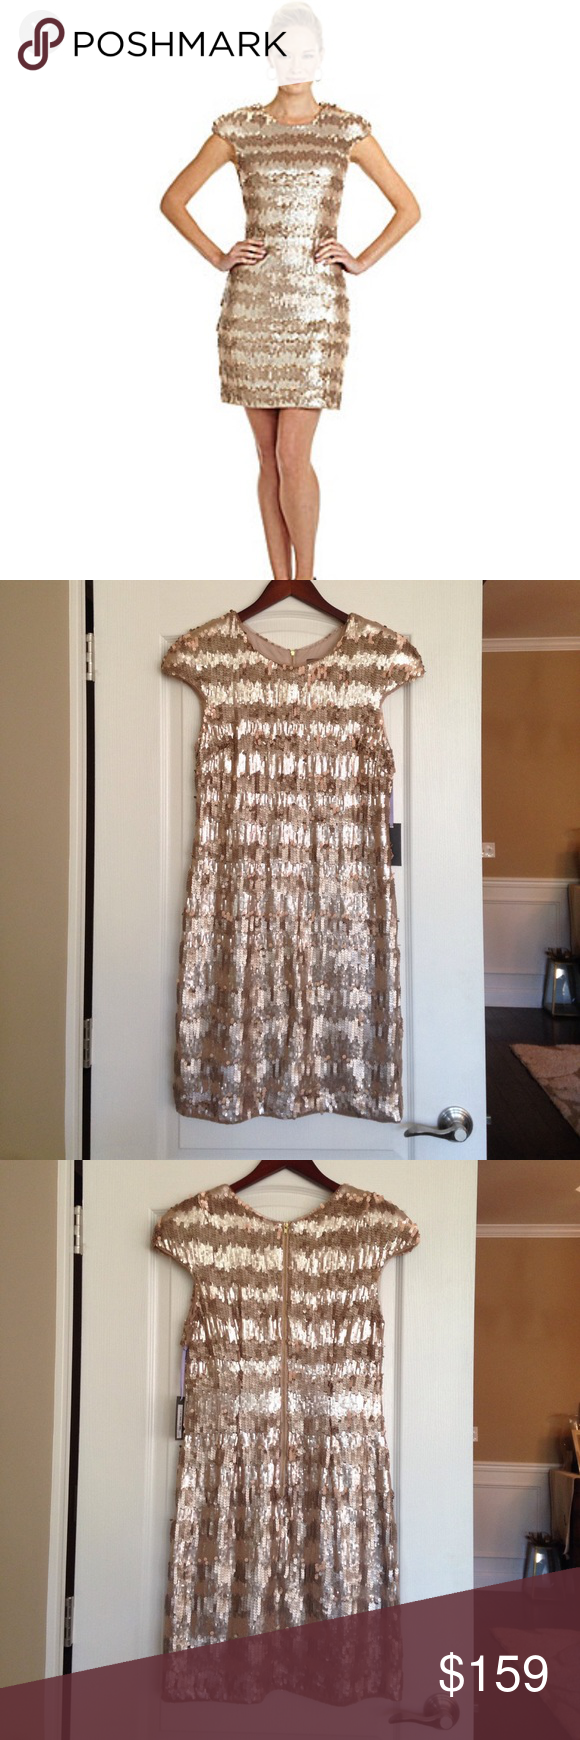 a32874d16d87 Vera Wang NWT Gold Paillette & Sequin Shift Dress